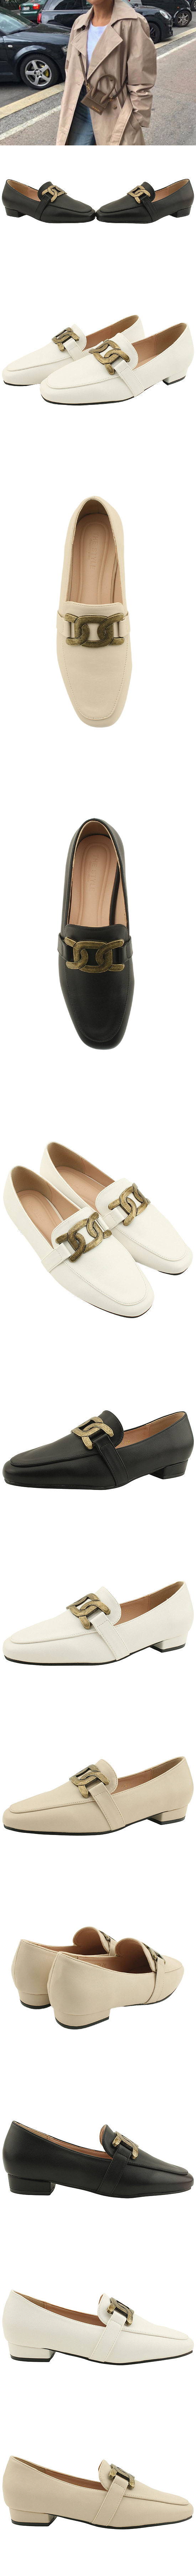 Copper chain classic low heel loafers white